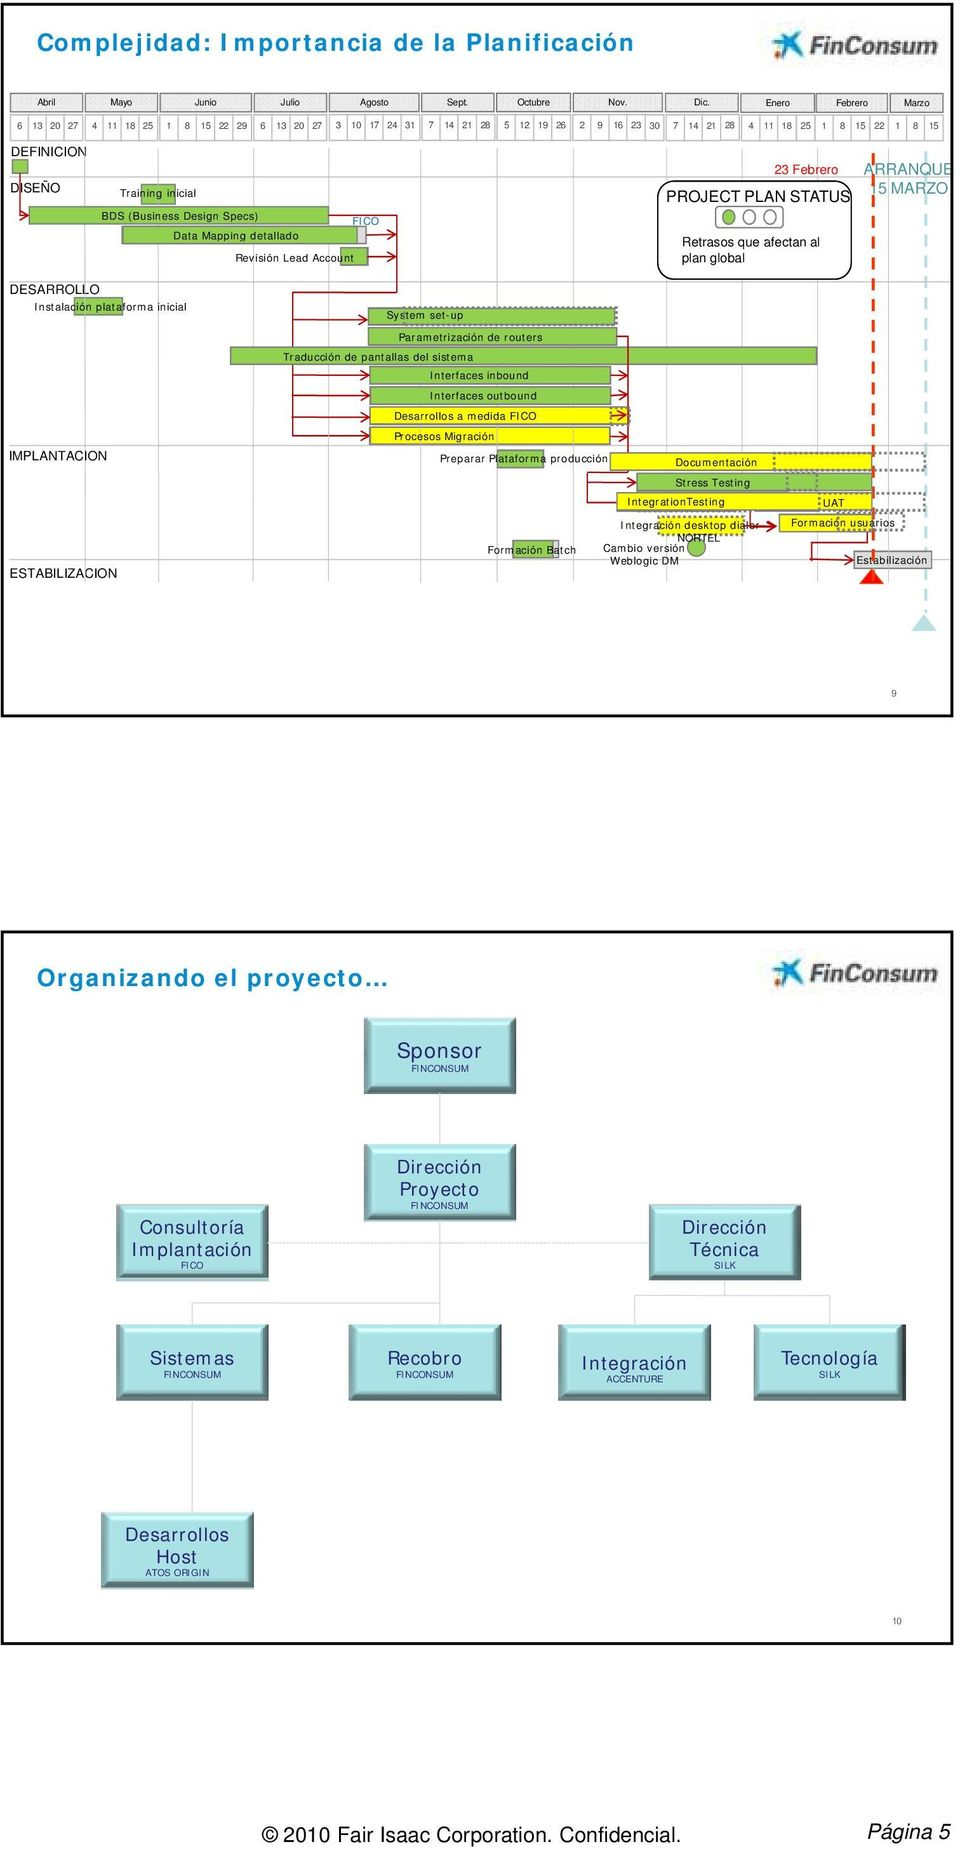 (Business Design Specs) FICO Data Mapping detallado Revisión Lead Account 23 Febrero PROJECT PLAN STATUS Retrasos que afectan al plan global ARRANQUE 15 MARZO DESARROLLO Instalación plataforma